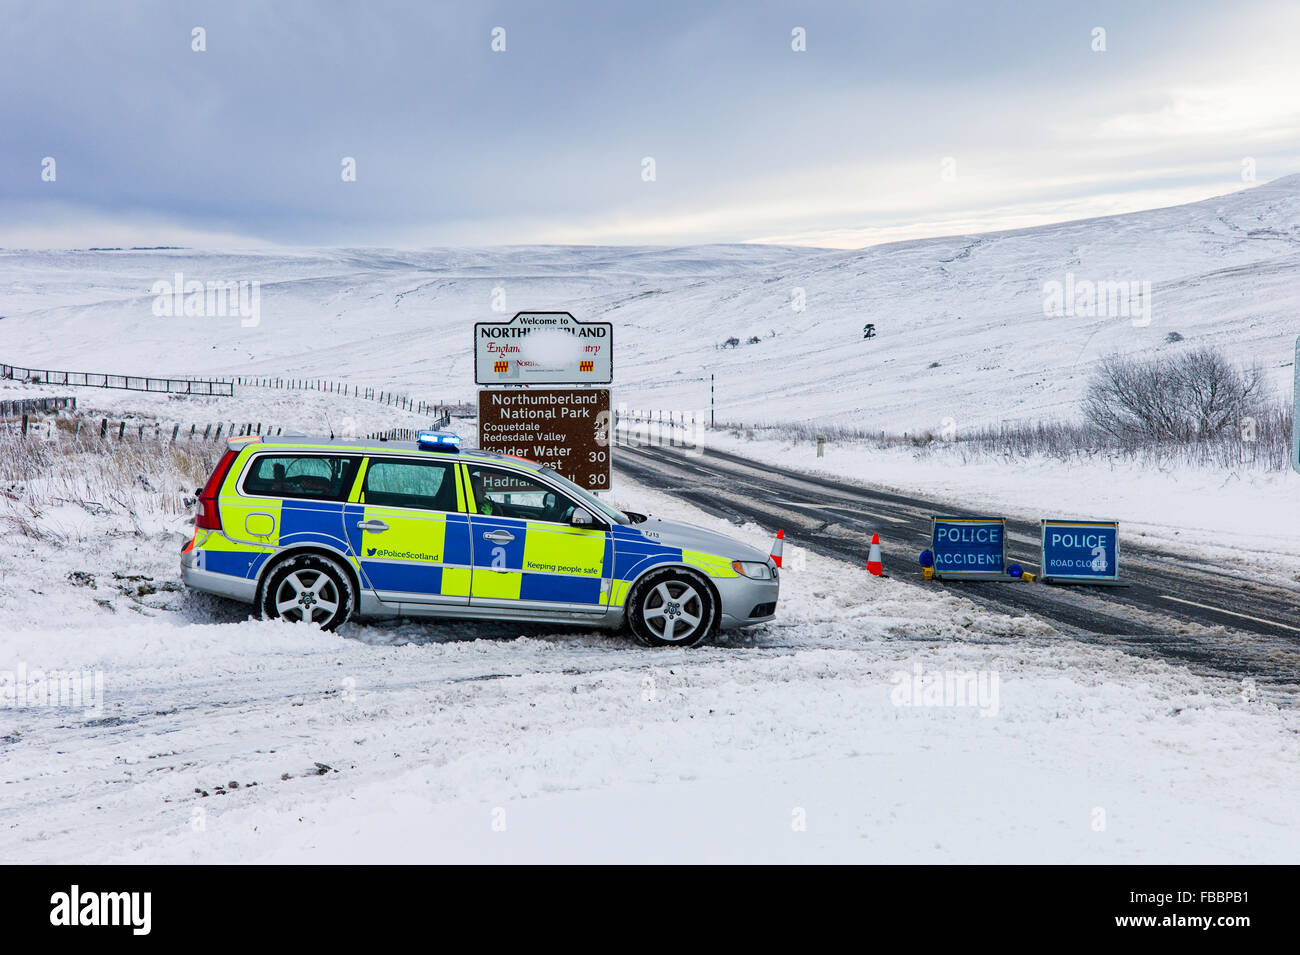 Carter Bar, Anglo Scot Border, UK. 14th January 2016. A Police roadblock on the A68 road which passes over the Carter - Stock Image